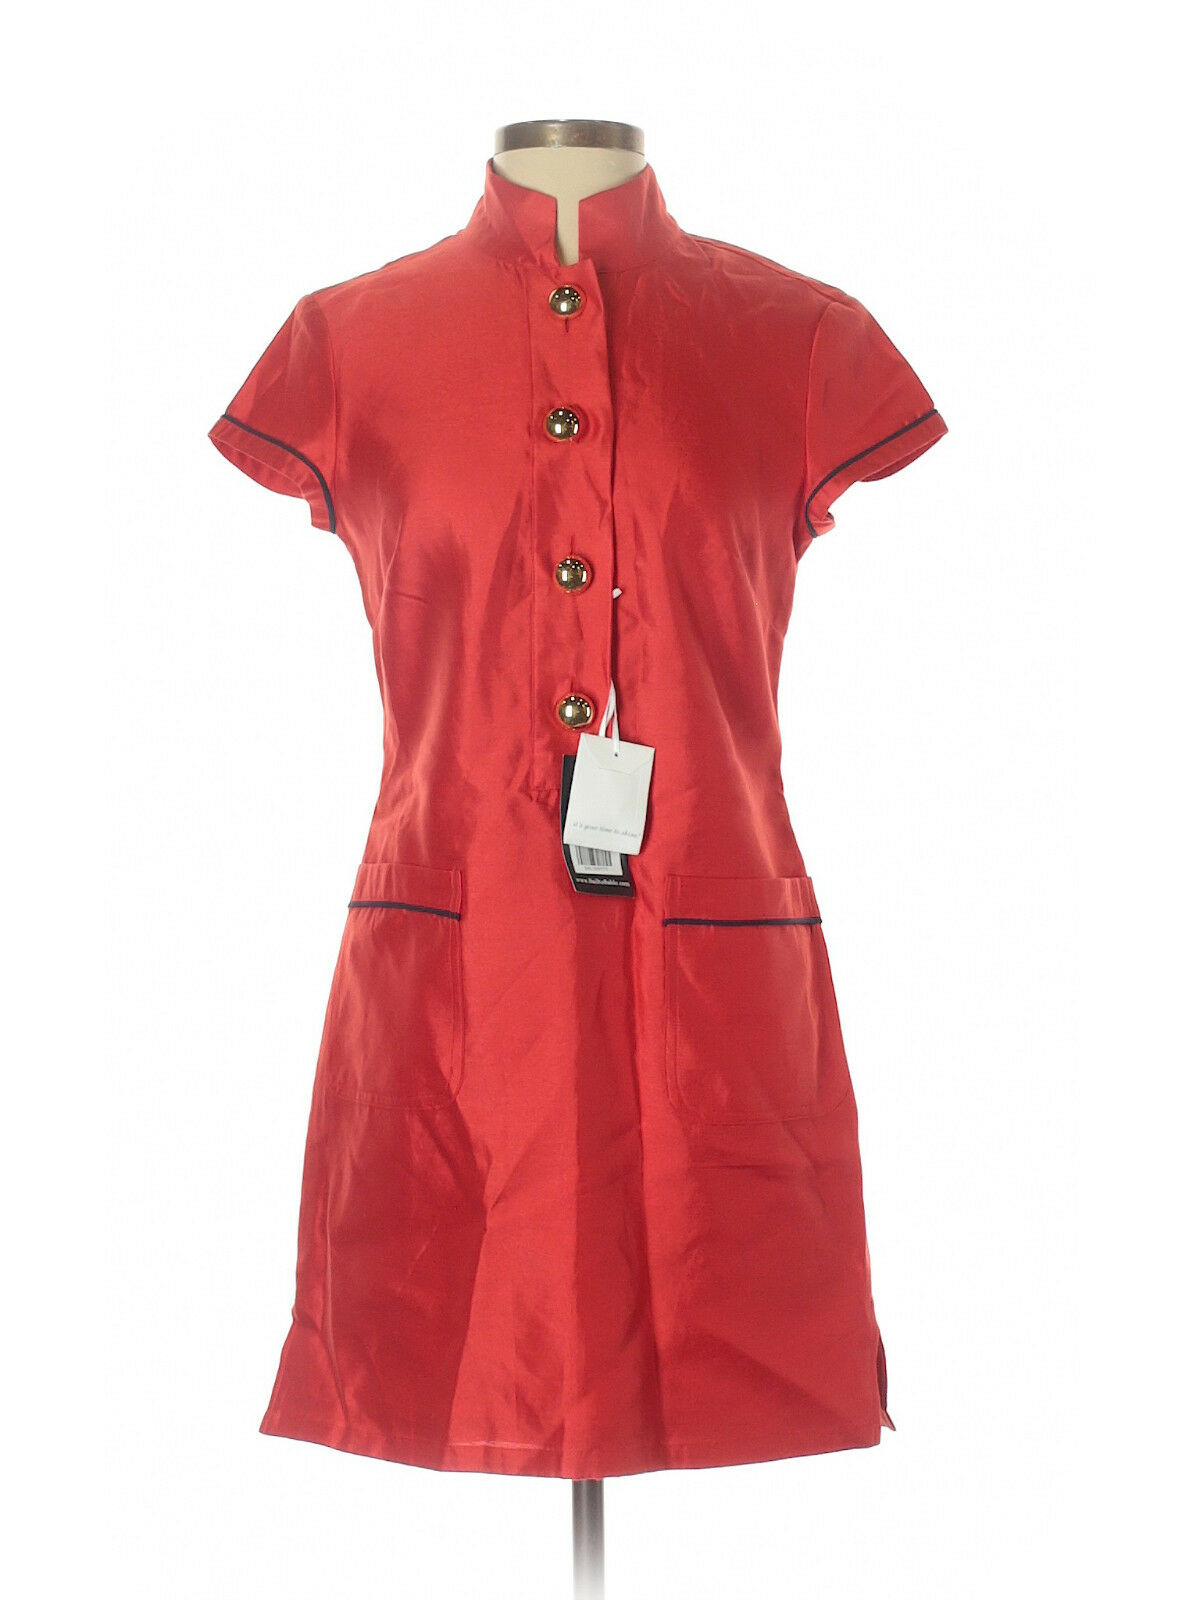 New Women Women Women Sail to Sable STS Solid Red Stand Collar gold Button Silk Dress Size 2 5d152d